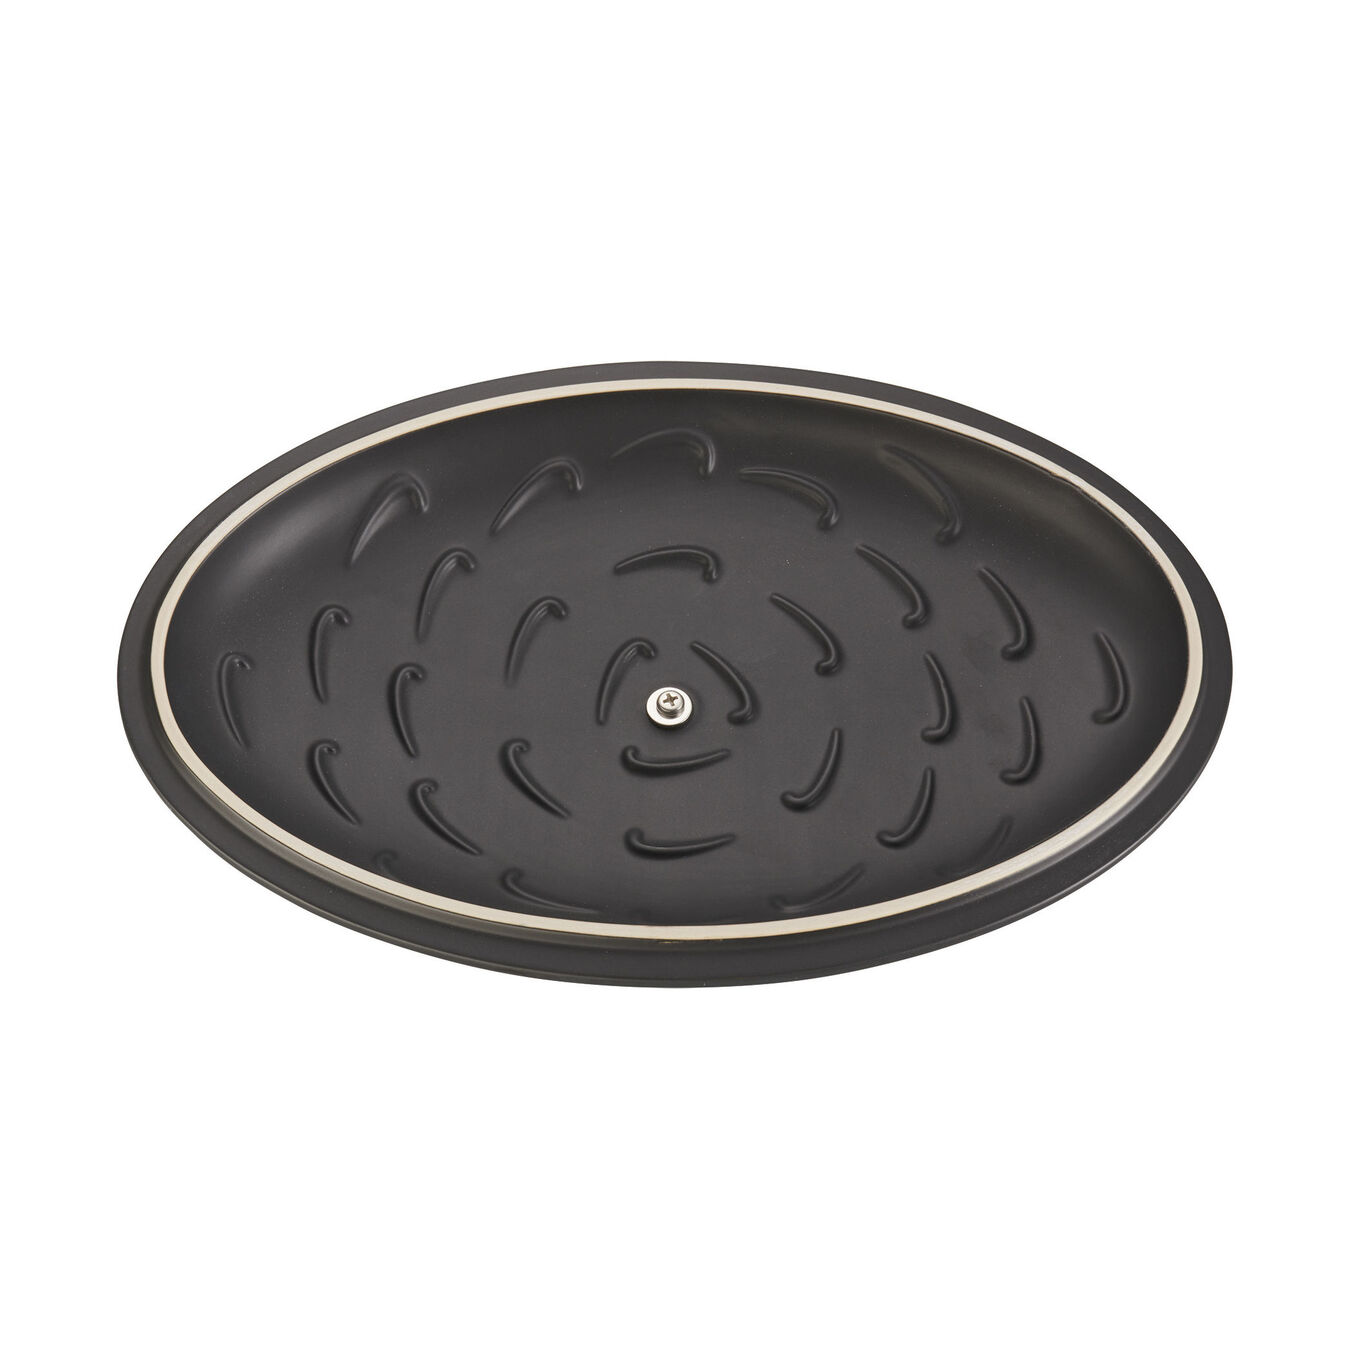 14-inch Oval Covered Baking Dish - Matte Black,,large 5